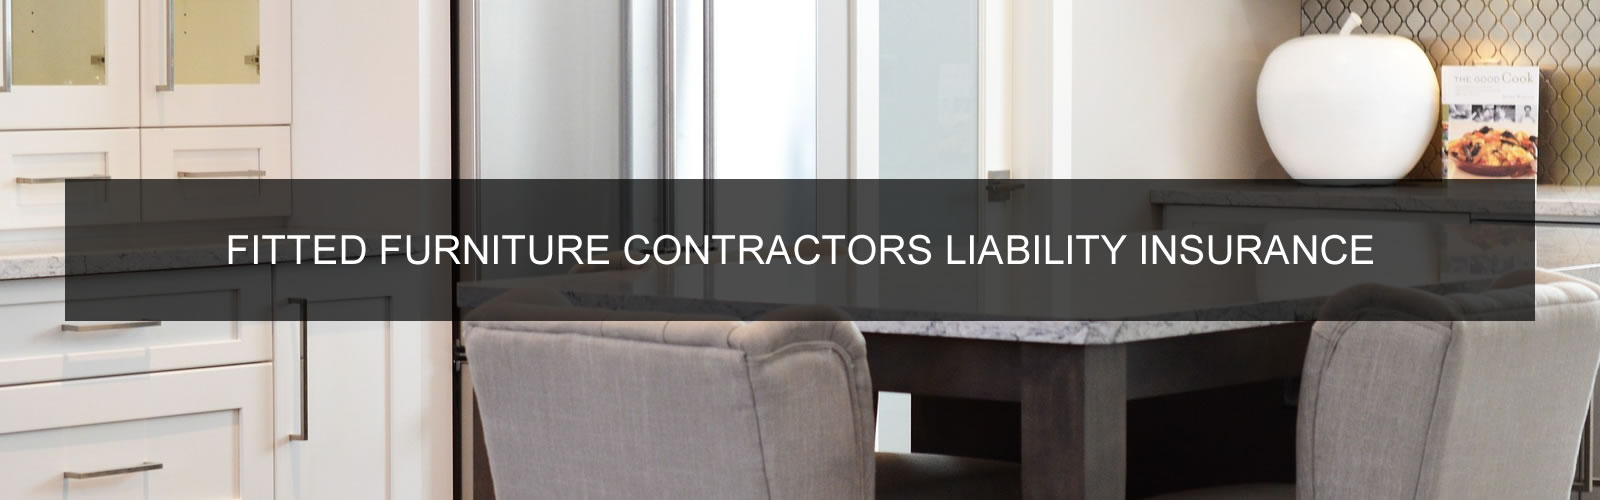 FITTED FURNITURE CONTRACTORS LIABILITY INSURANCE